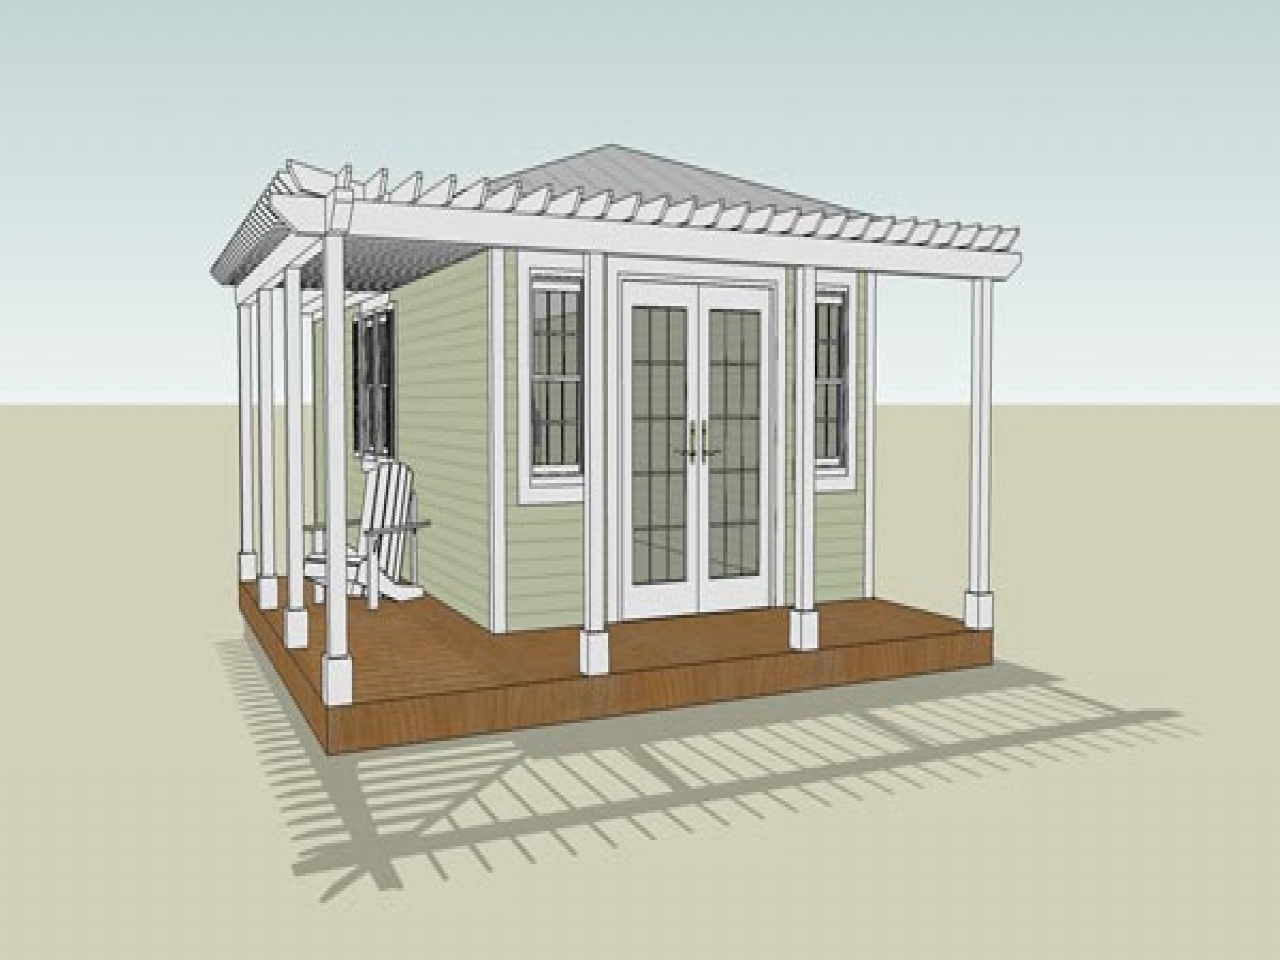 Key west style furniture small key west style house plans for Small key west house plans